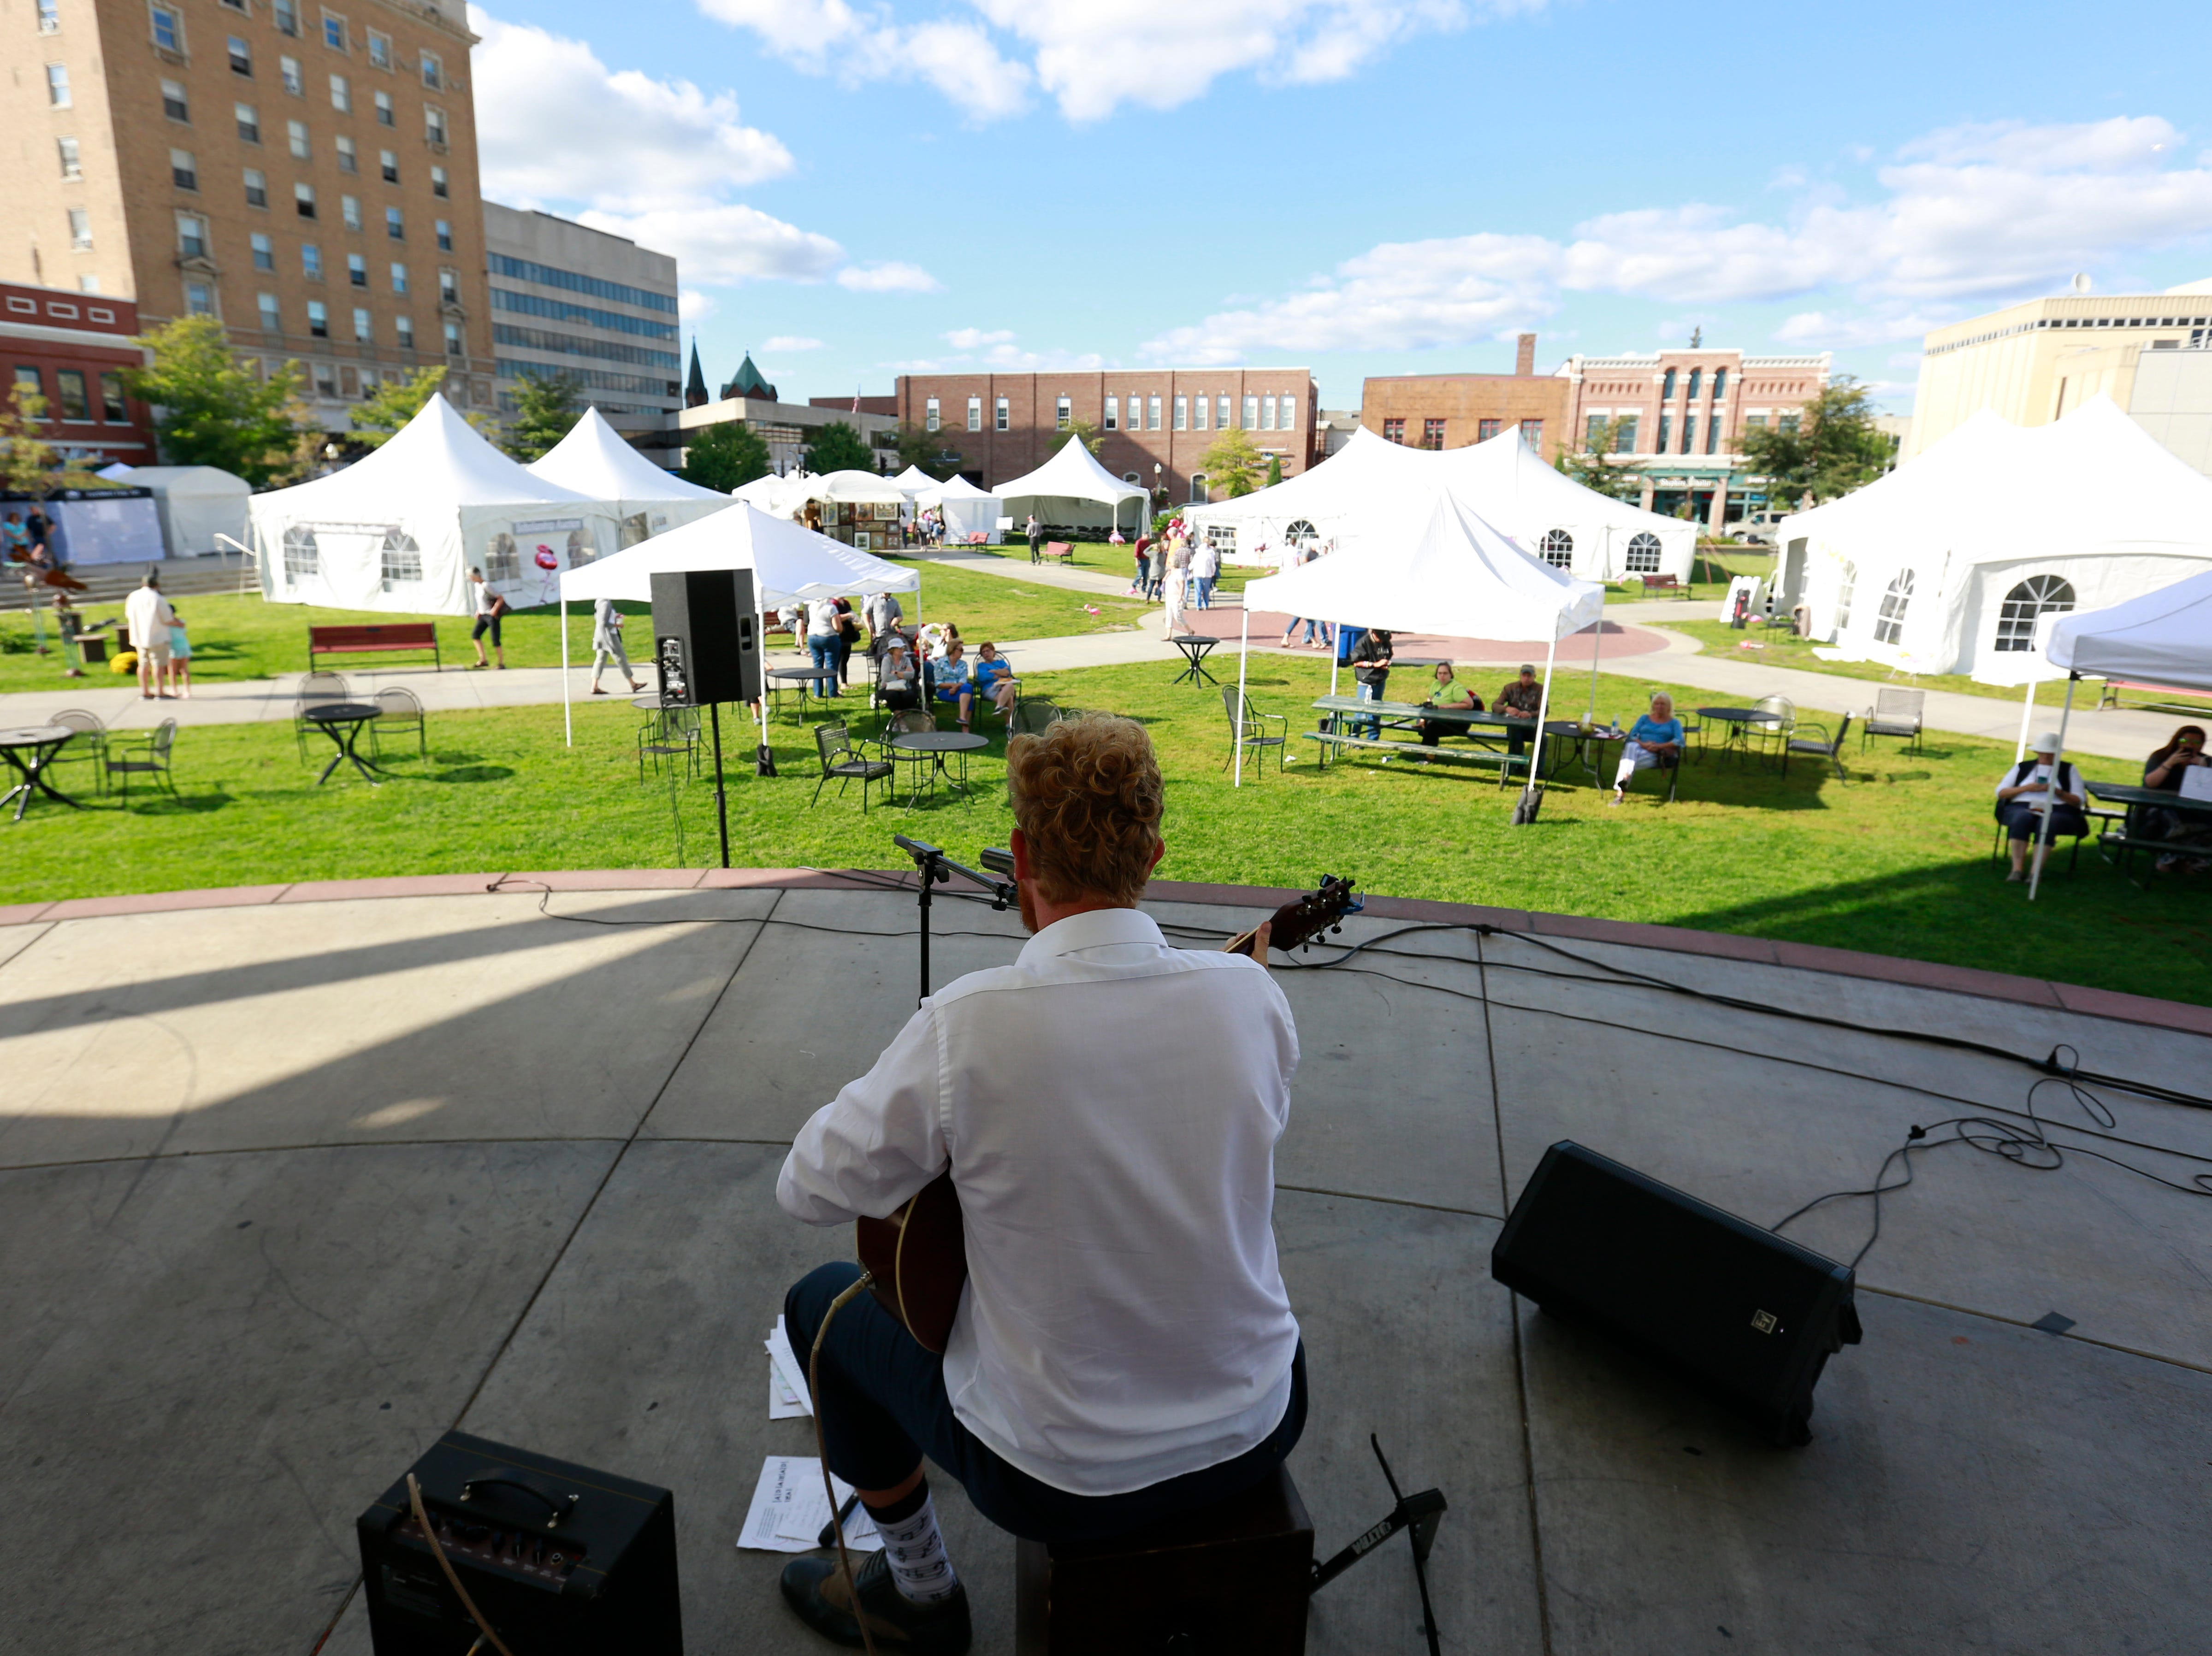 A musician performs on the stage in The 400 Block during Wausau Festival of Arts event held Saturday, Sept. 8, 2018, in downtoown Wausau, Wis. T'xer Zhon Kha/USA TODAY NETWORK-Wisconsin